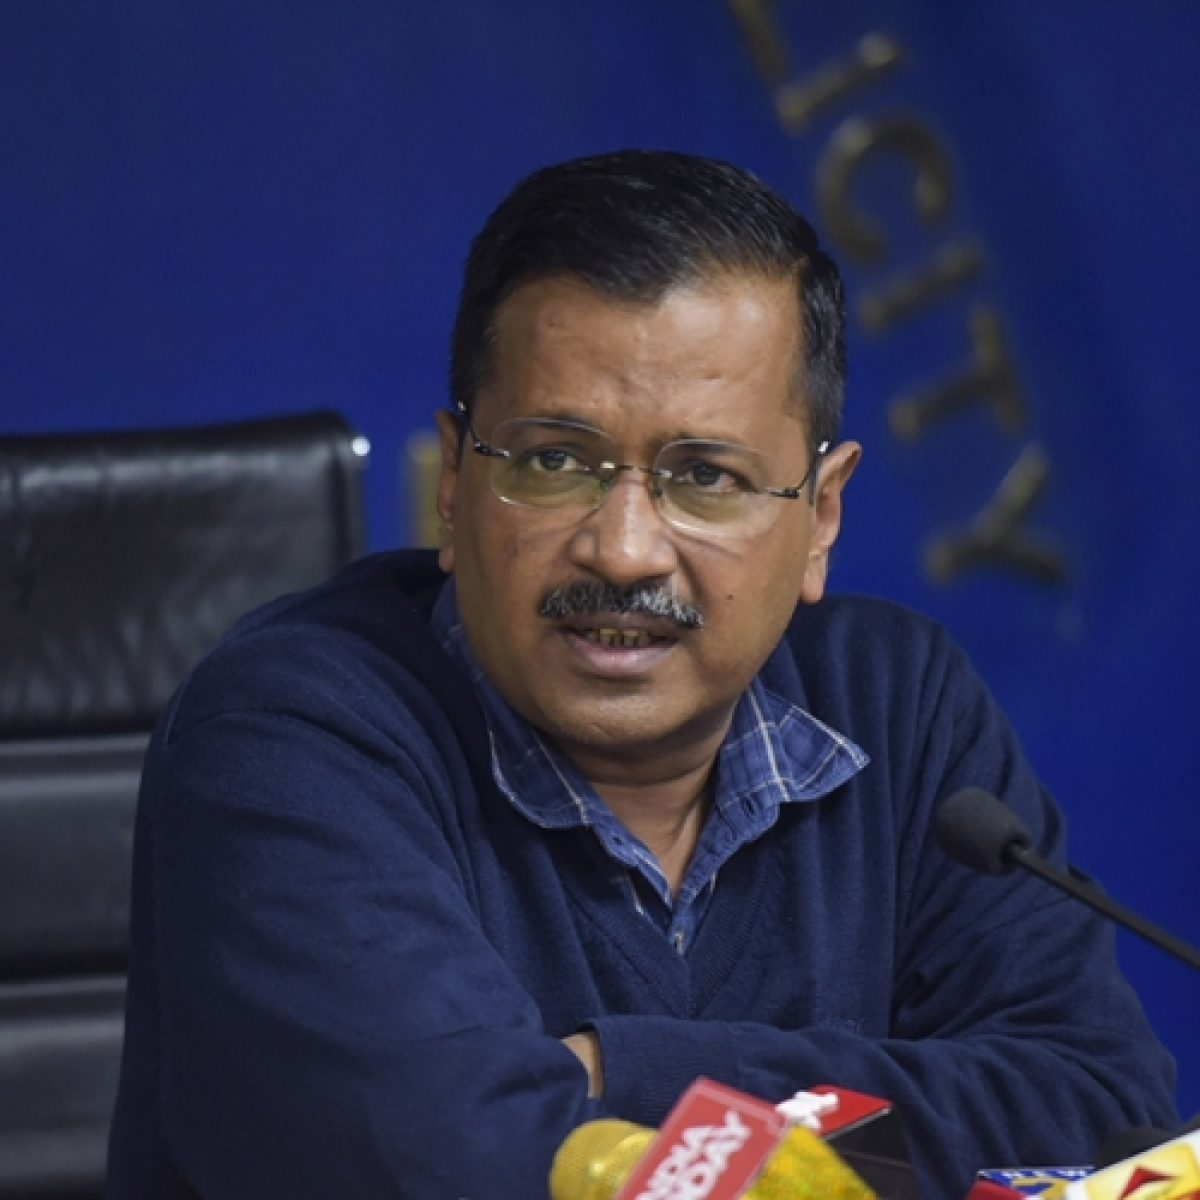 Hathras gang-rape: Kejriwal raps UP govt for cremating teen's body at night against Hindu customs